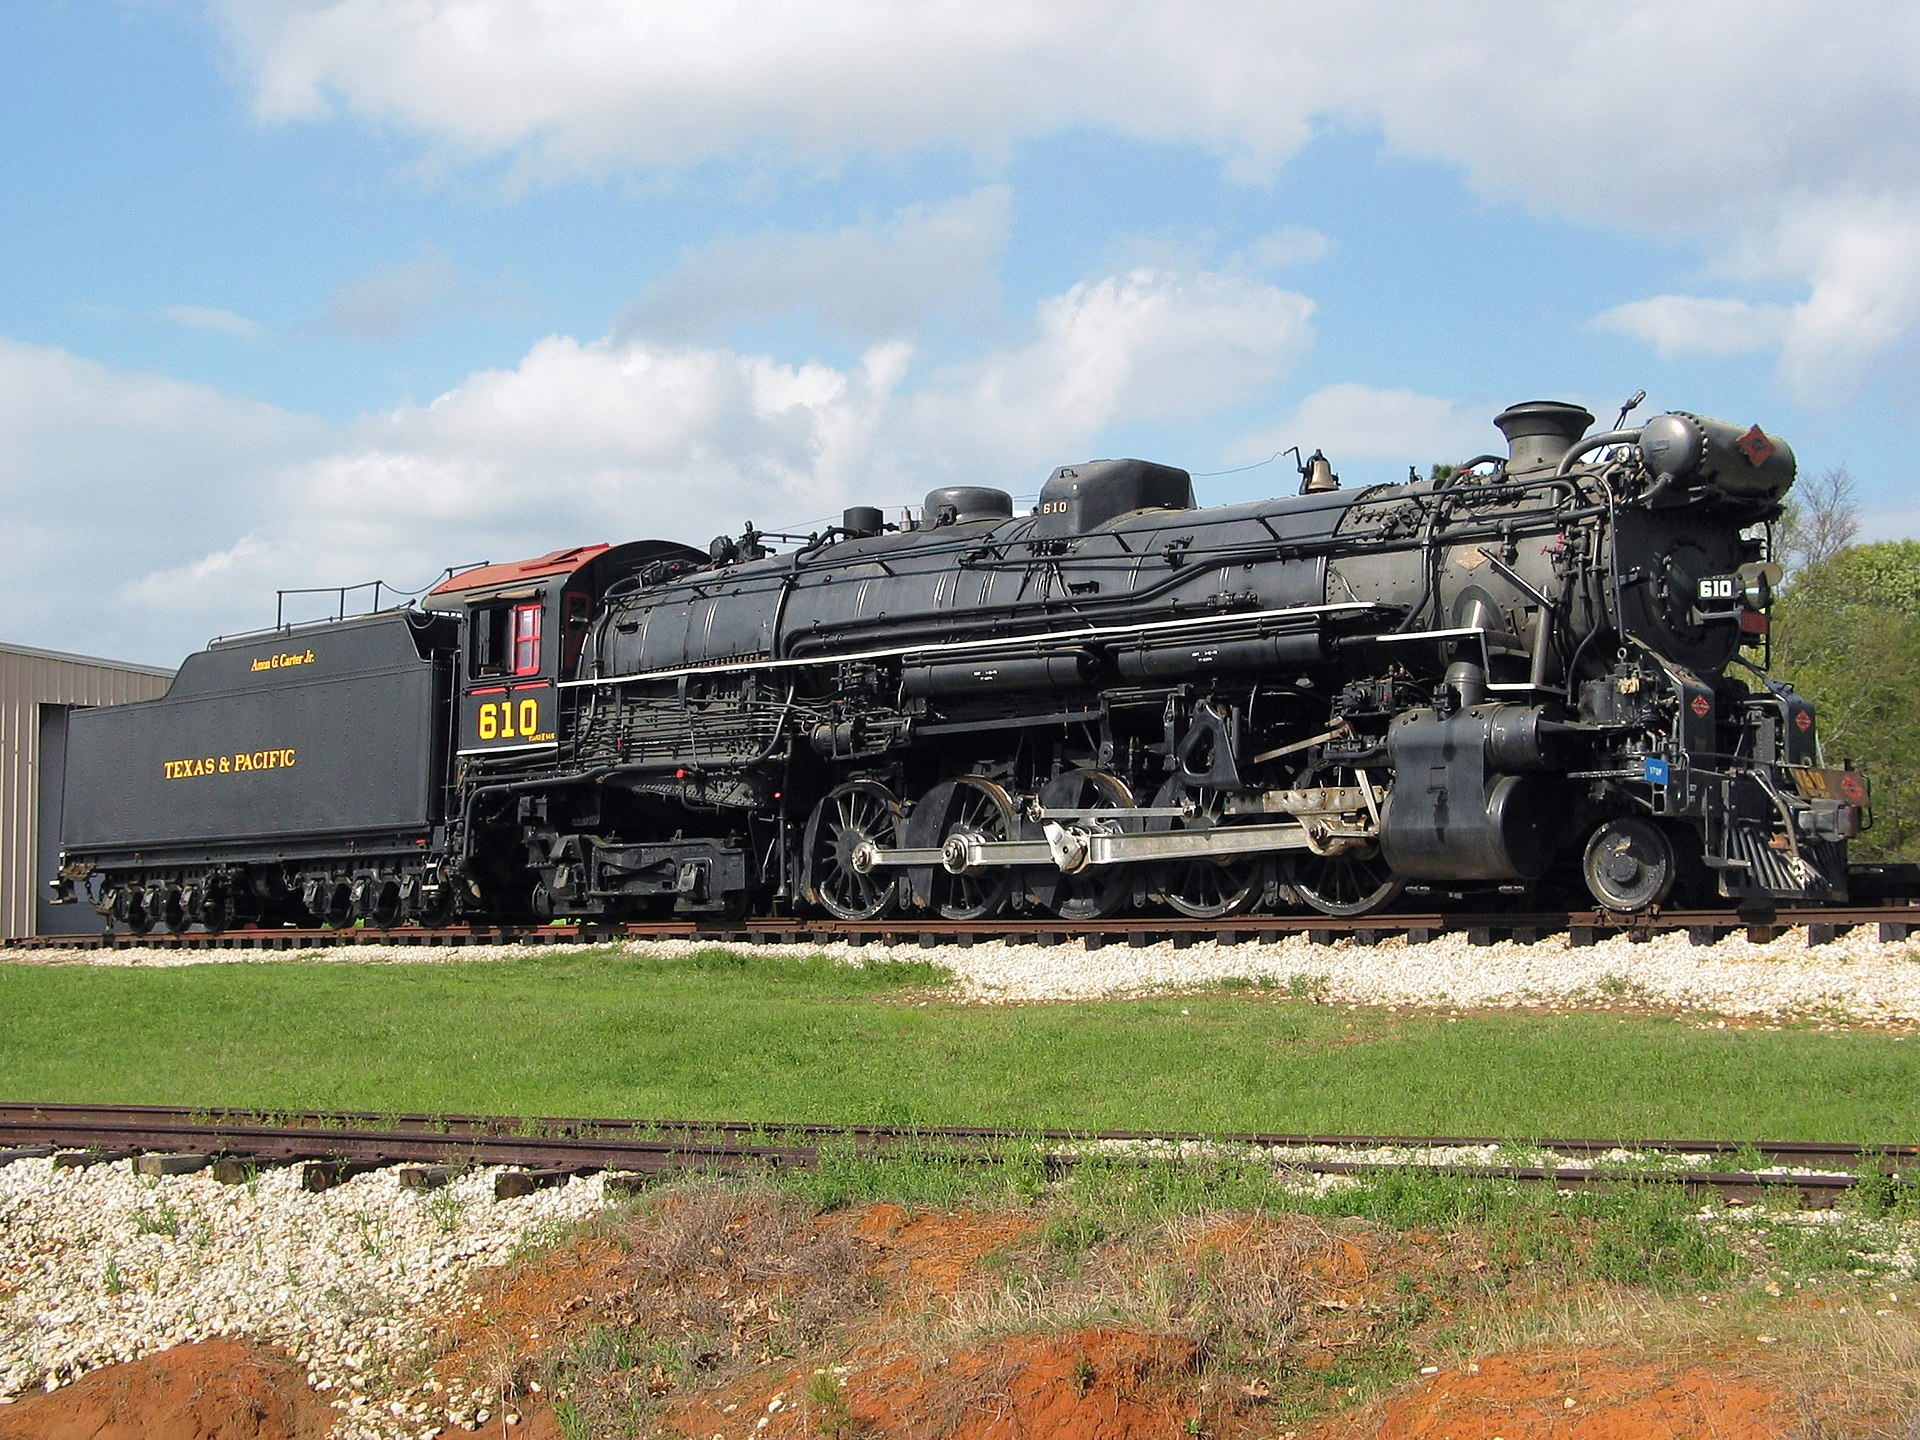 Texas and Pacific 610 - Wikipedia